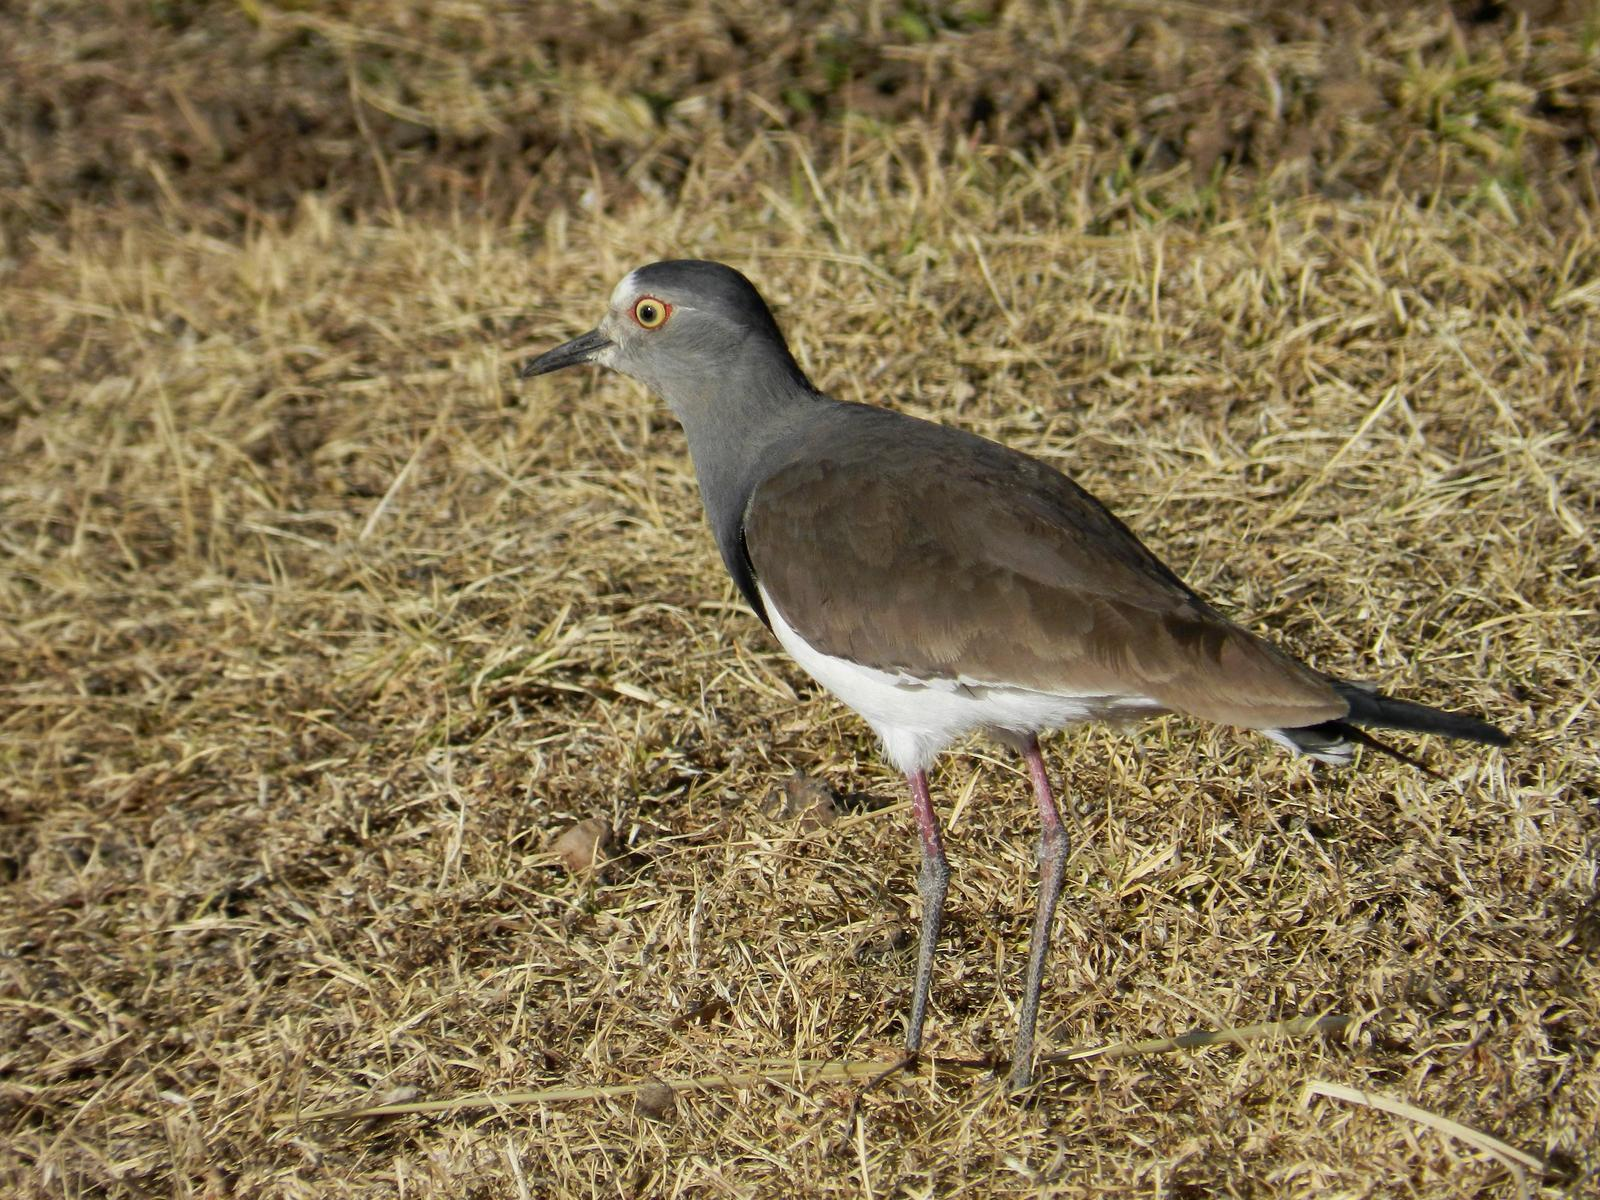 Black-winged Lapwing Photo by Richard Jeffers